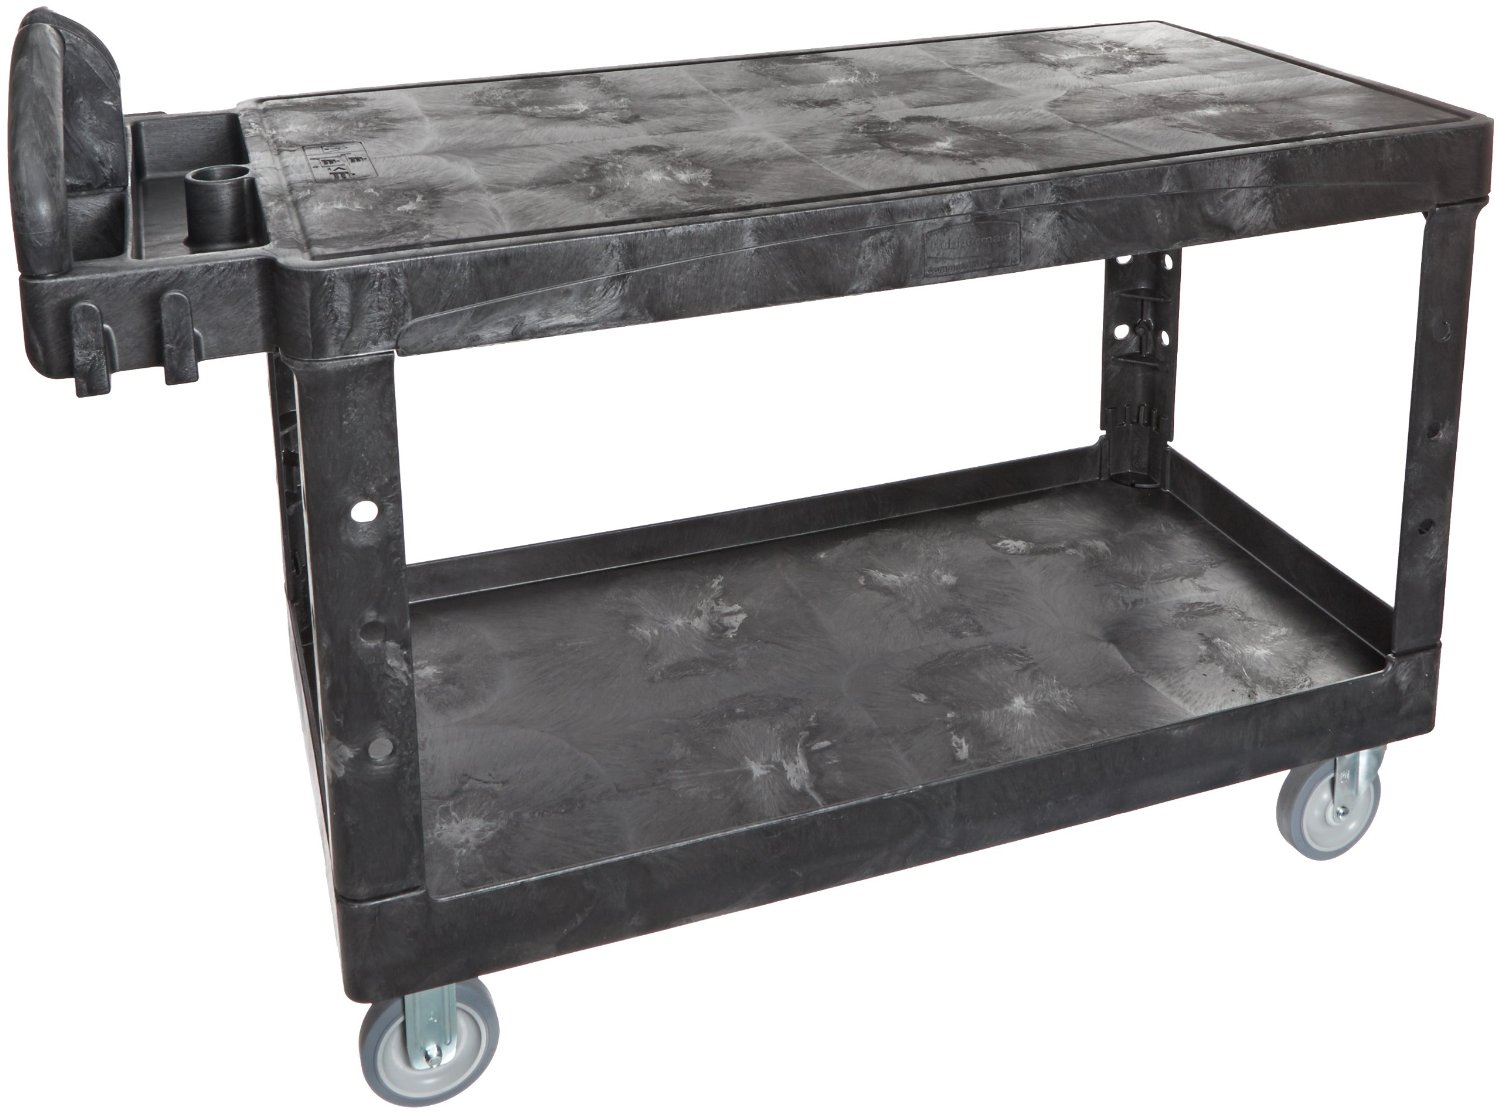 Cozy Dark Steel Edsal Shelving In Double Tier Design With Wheels For Garage Furniture Ideas